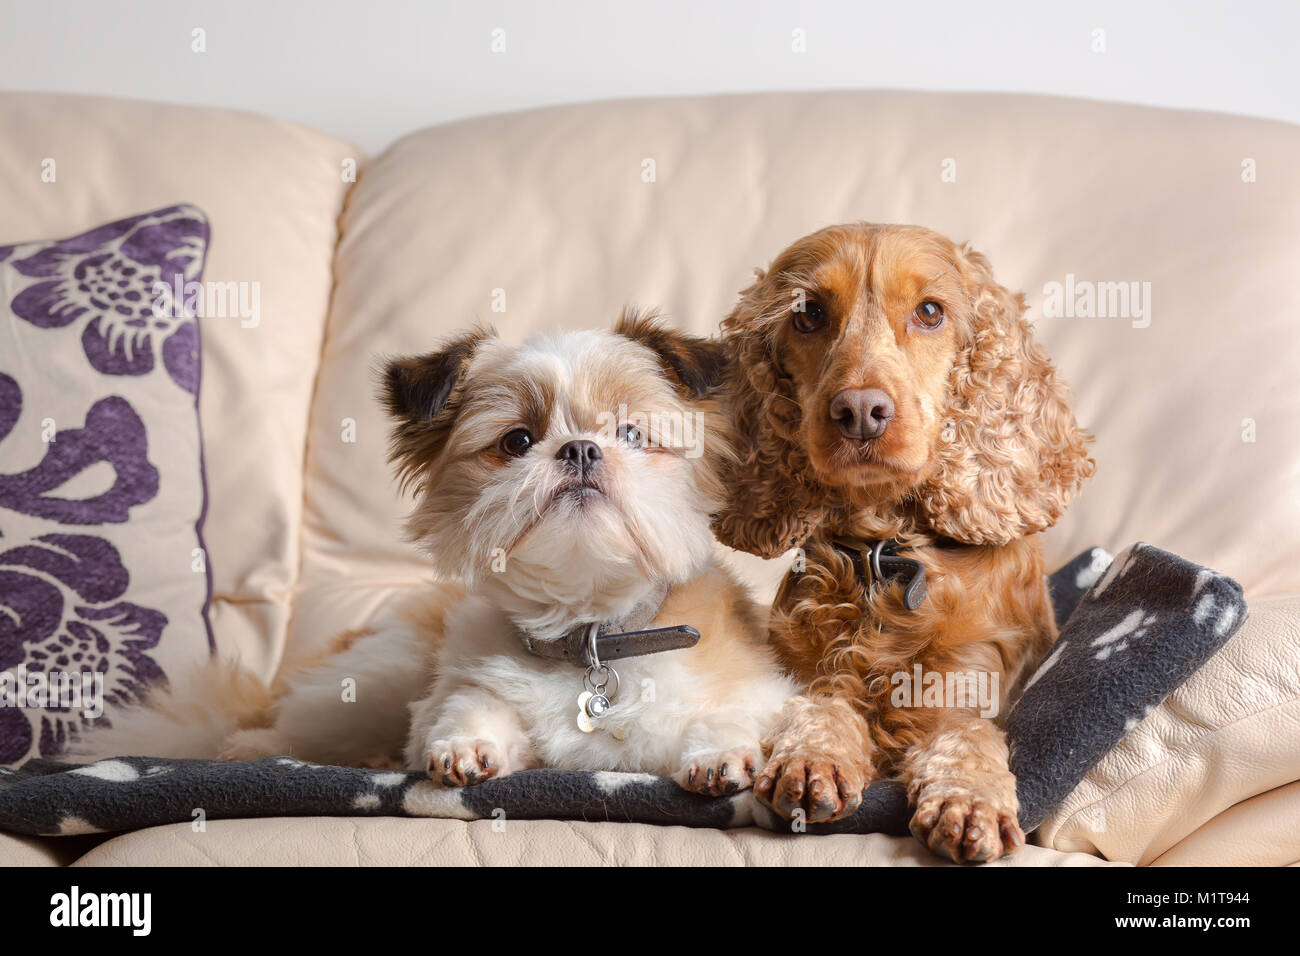 Adorable, cosy pet portrait of Pomeranian Shih Tzu & Red Cocker Spaniel, sat together on leather sofa in family - Stock Image